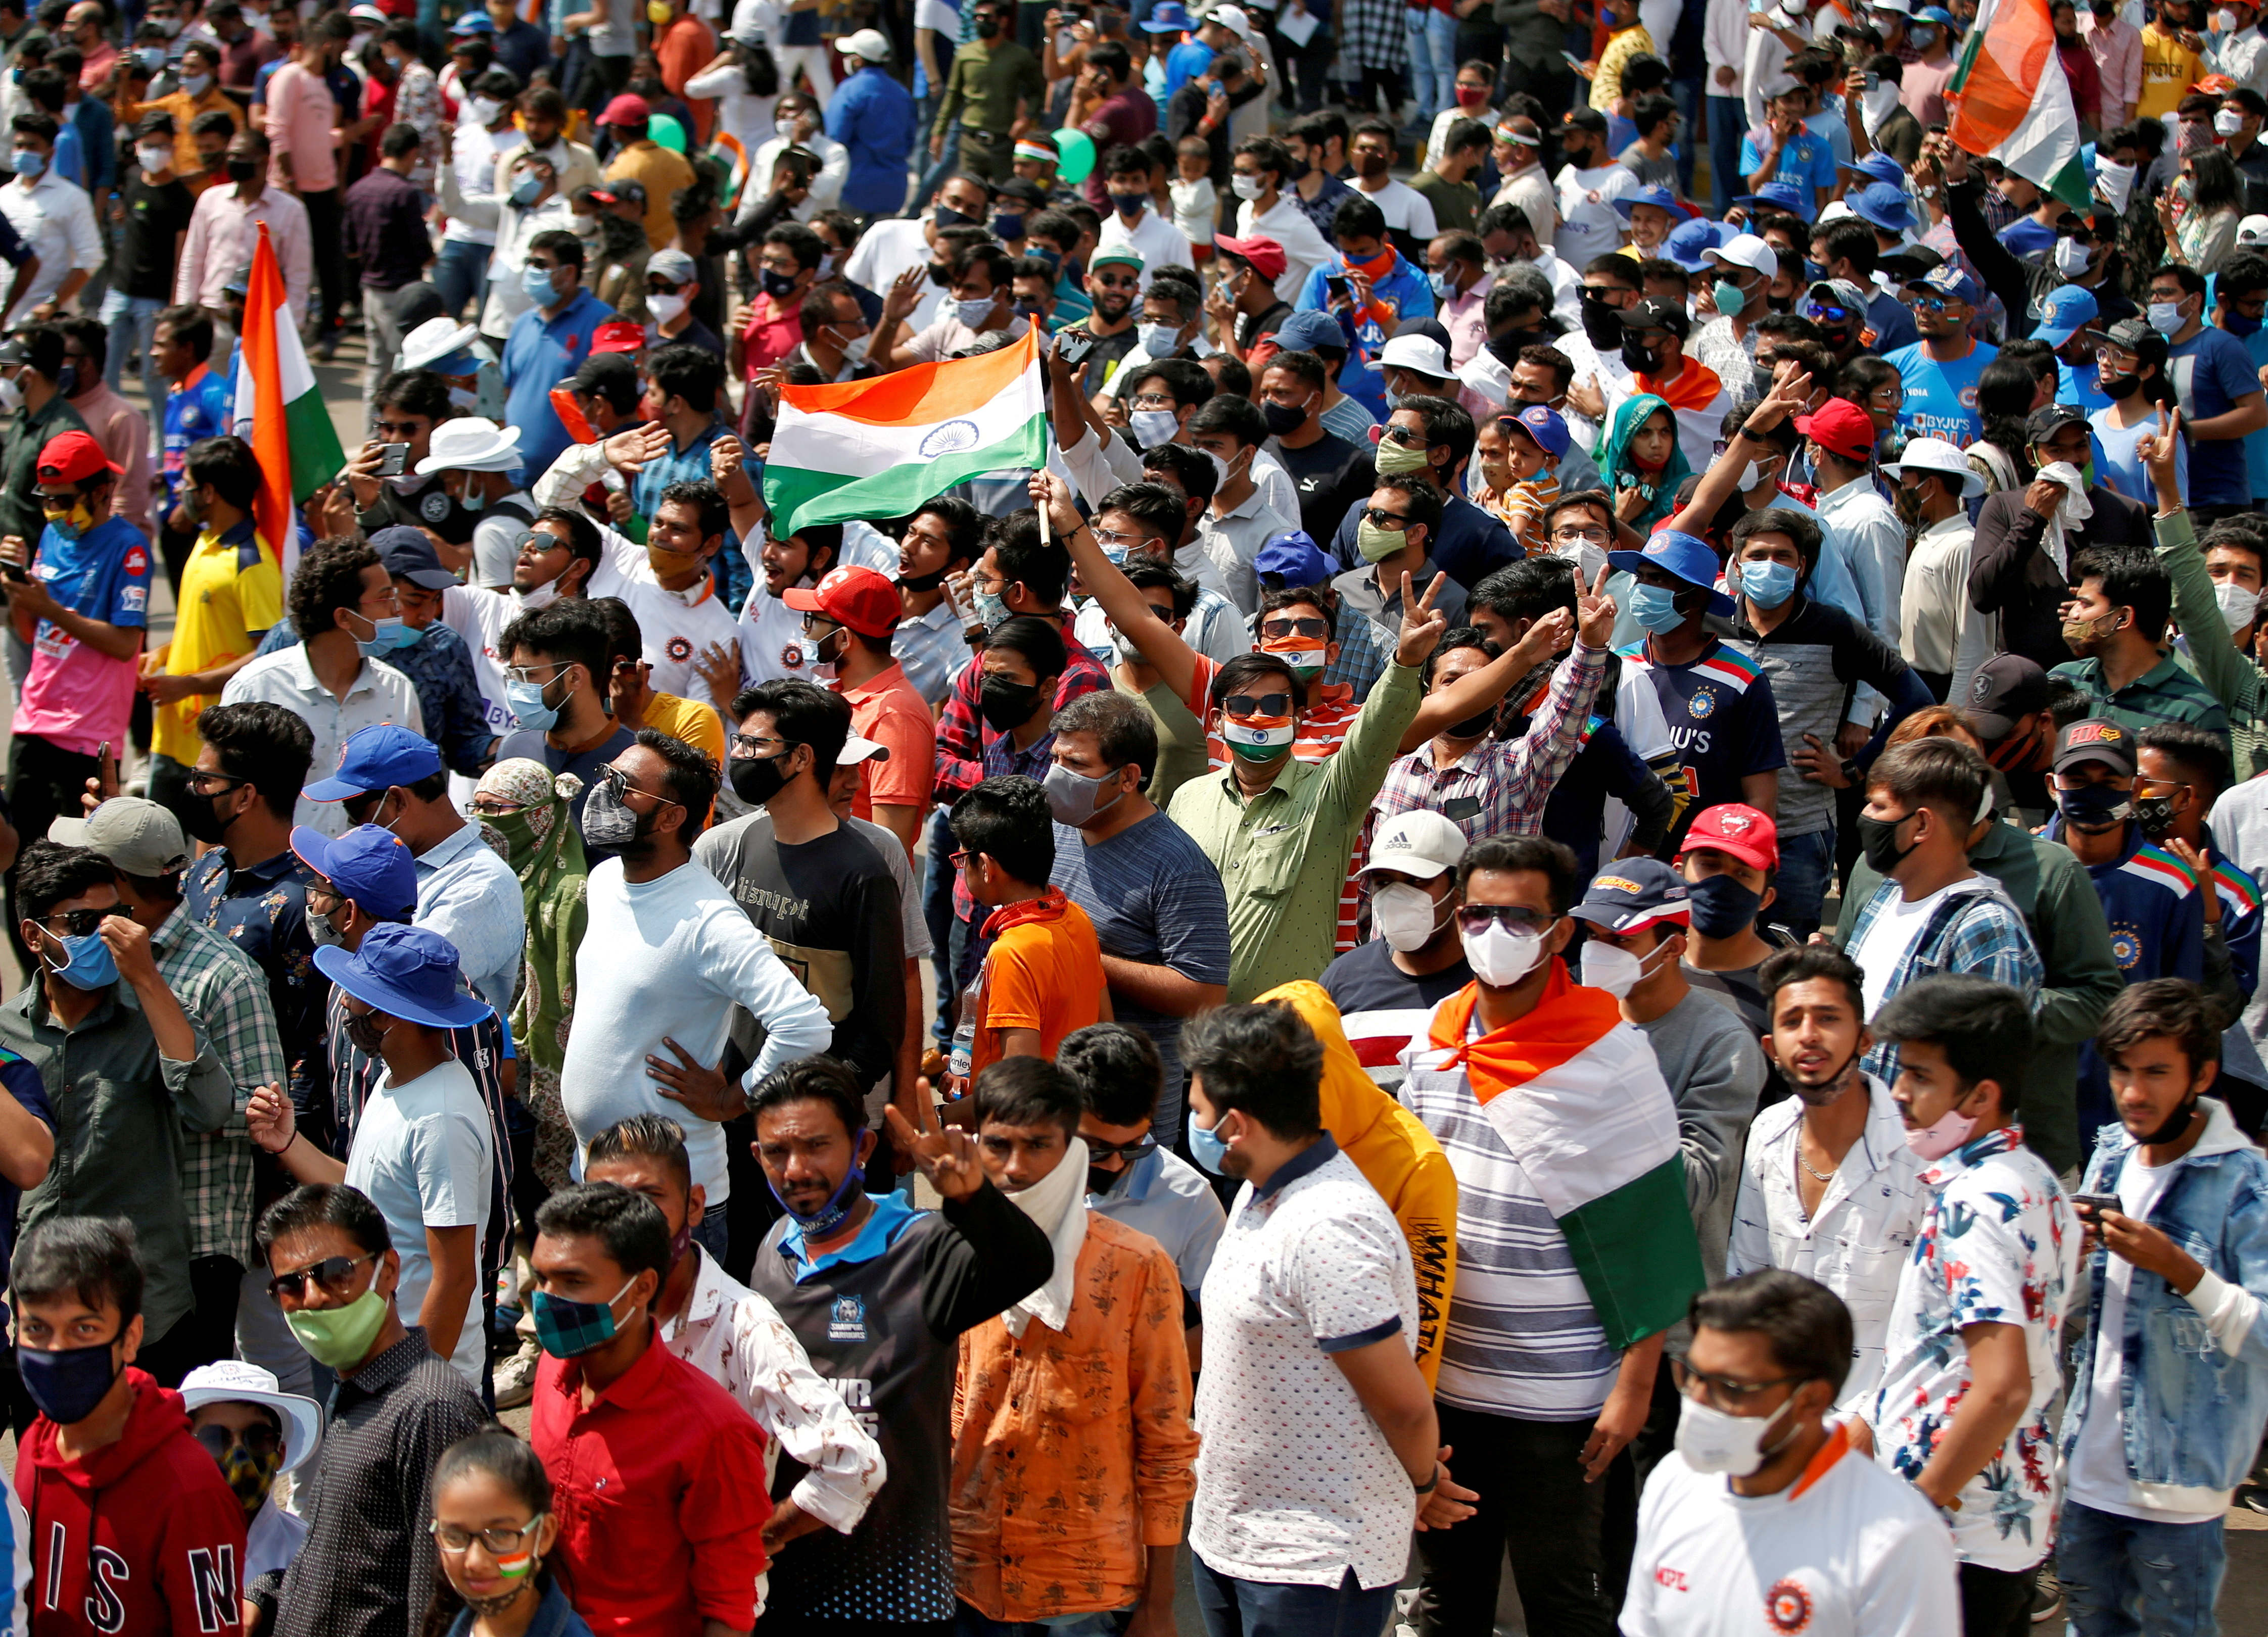 Fans react as they wait to enter the Narendra Modi Stadium before the start of the third test match between India and England in Ahmedabad, India, February 24, 2021. REUTERS/Amit Dave/File Photo